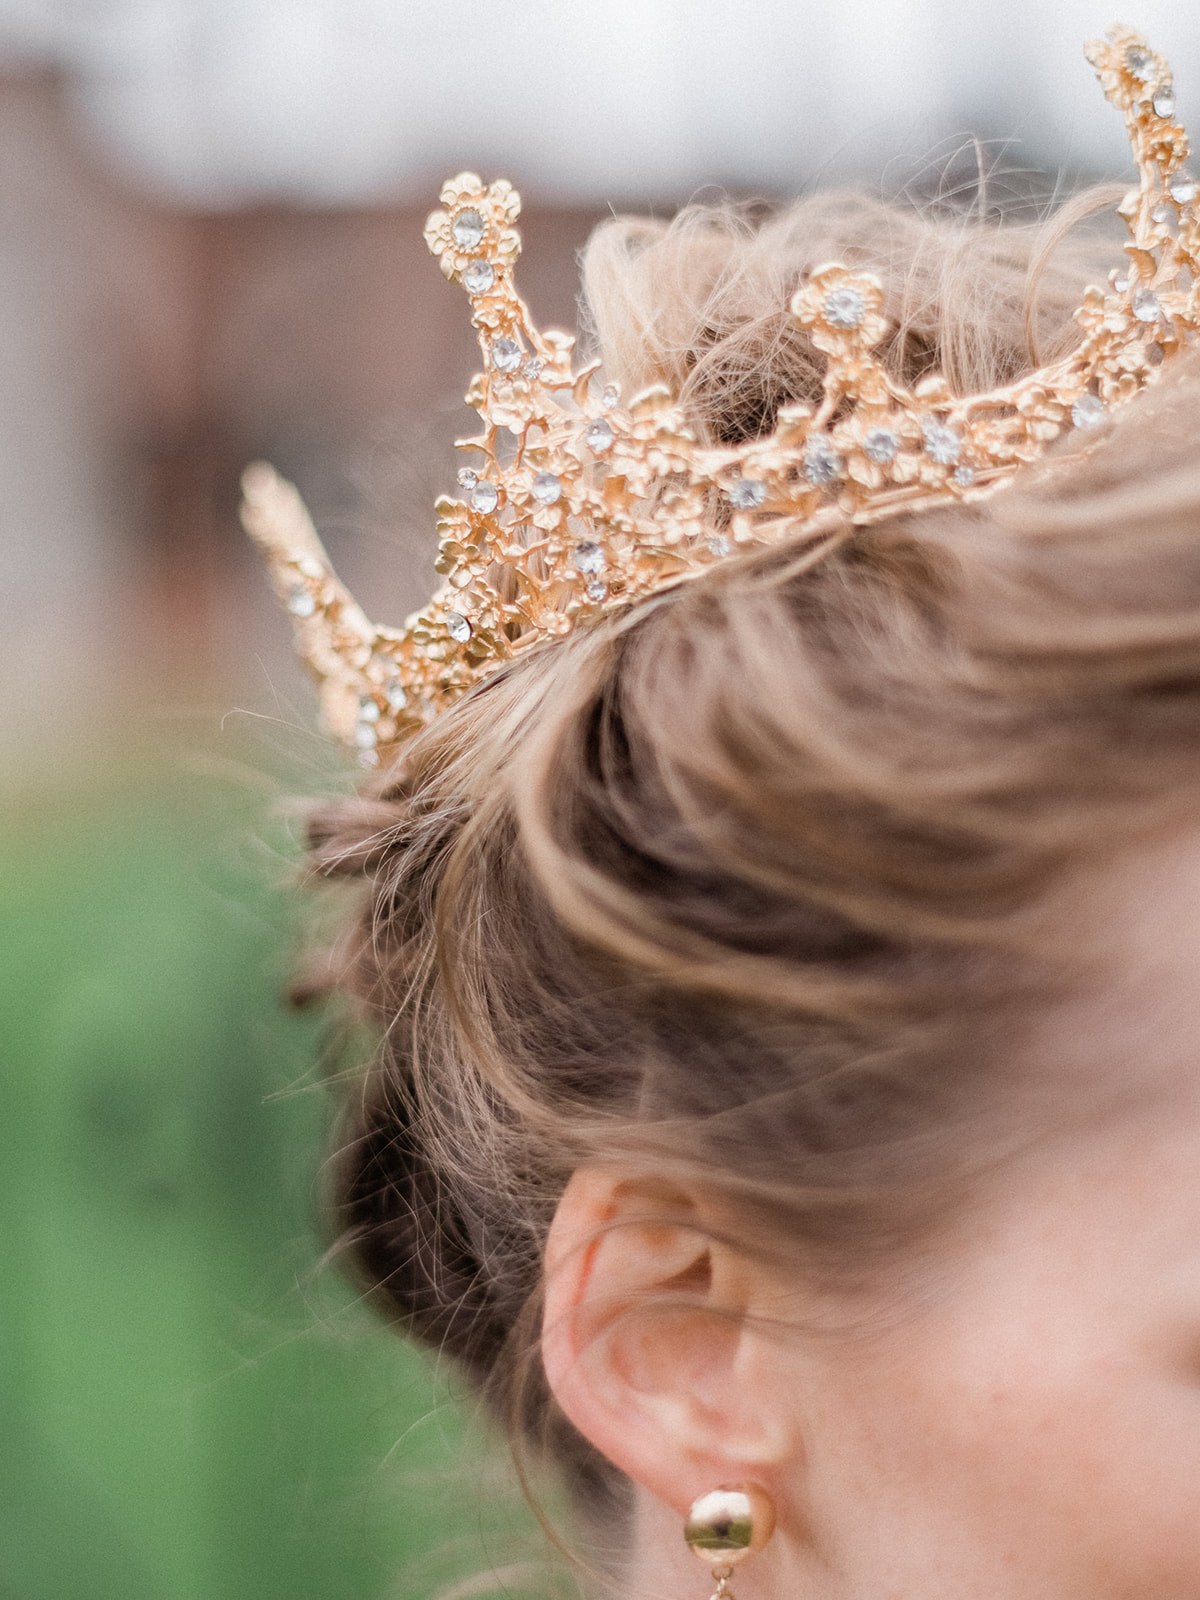 ornate crown for bride at wedding